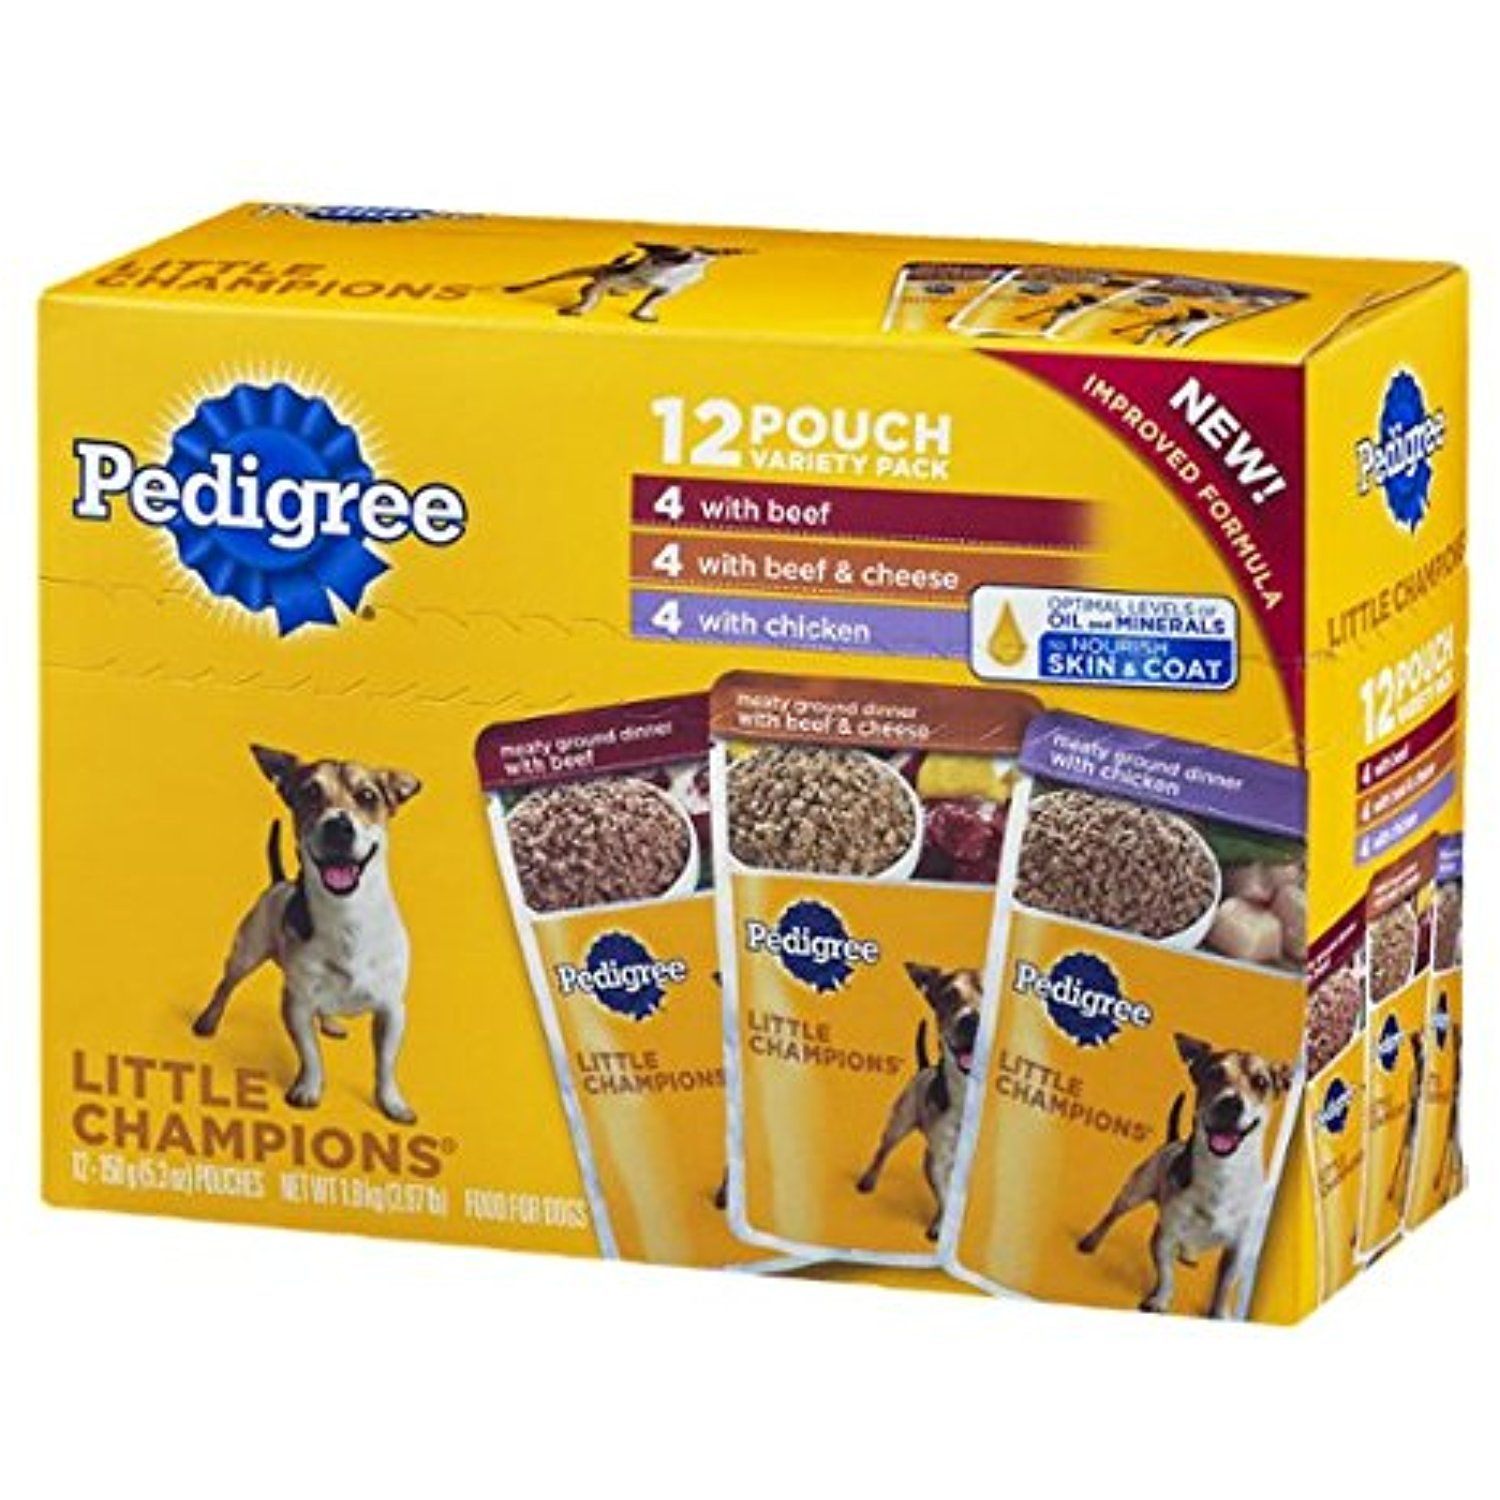 Pedigree Little Champions Food For Dogs Variety Pack 12 Ct